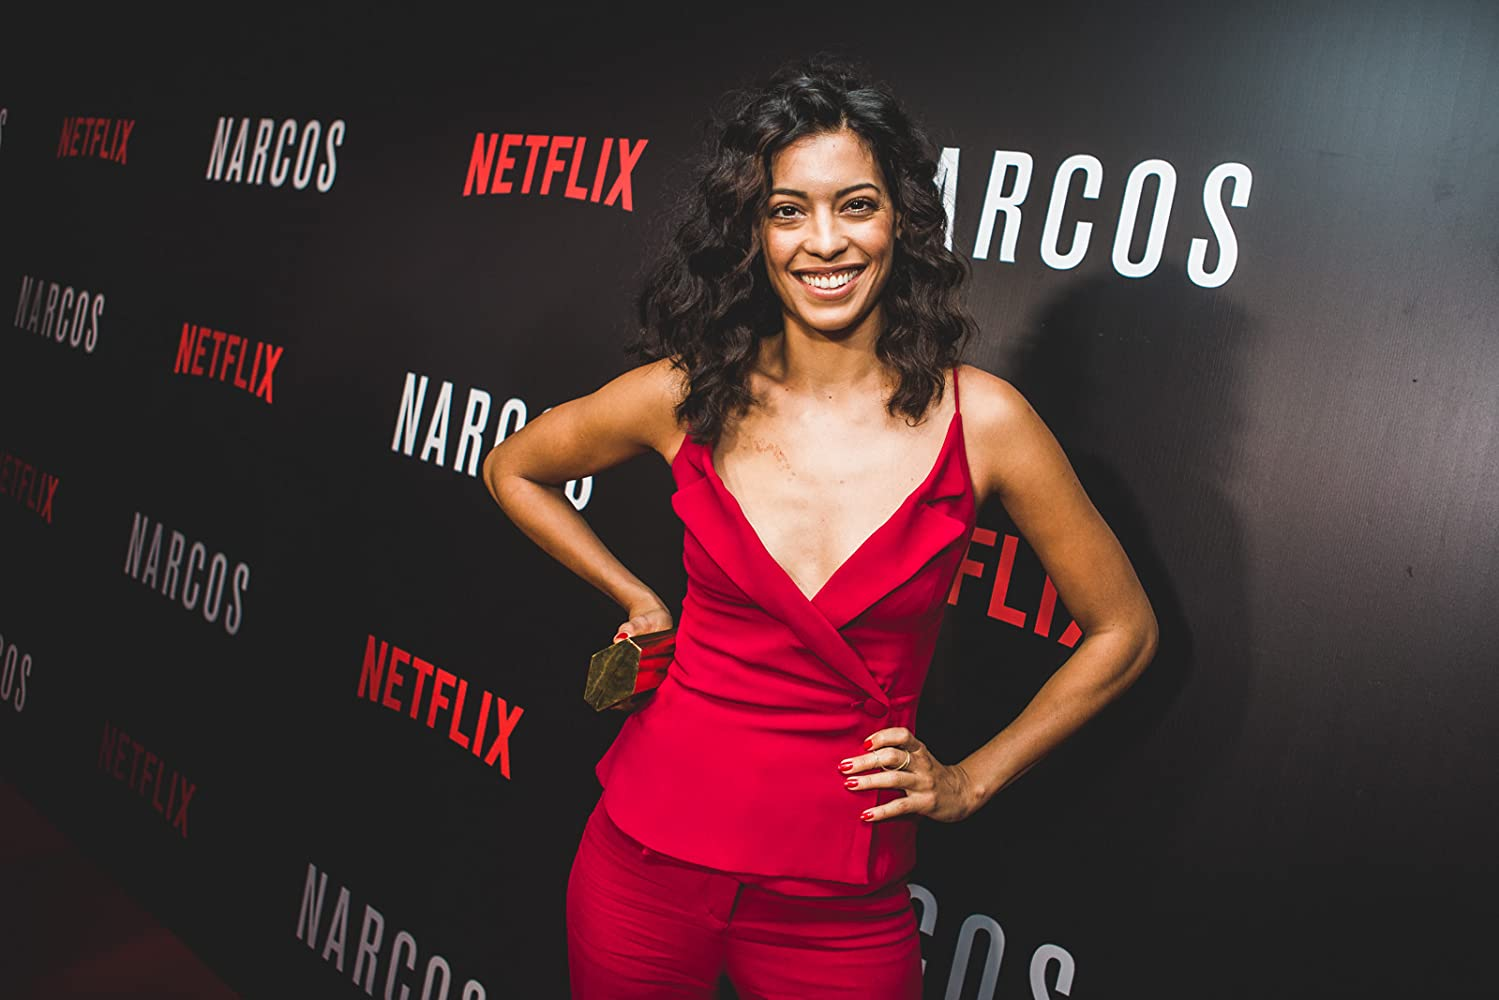 stephanie sigman movies and tv shows